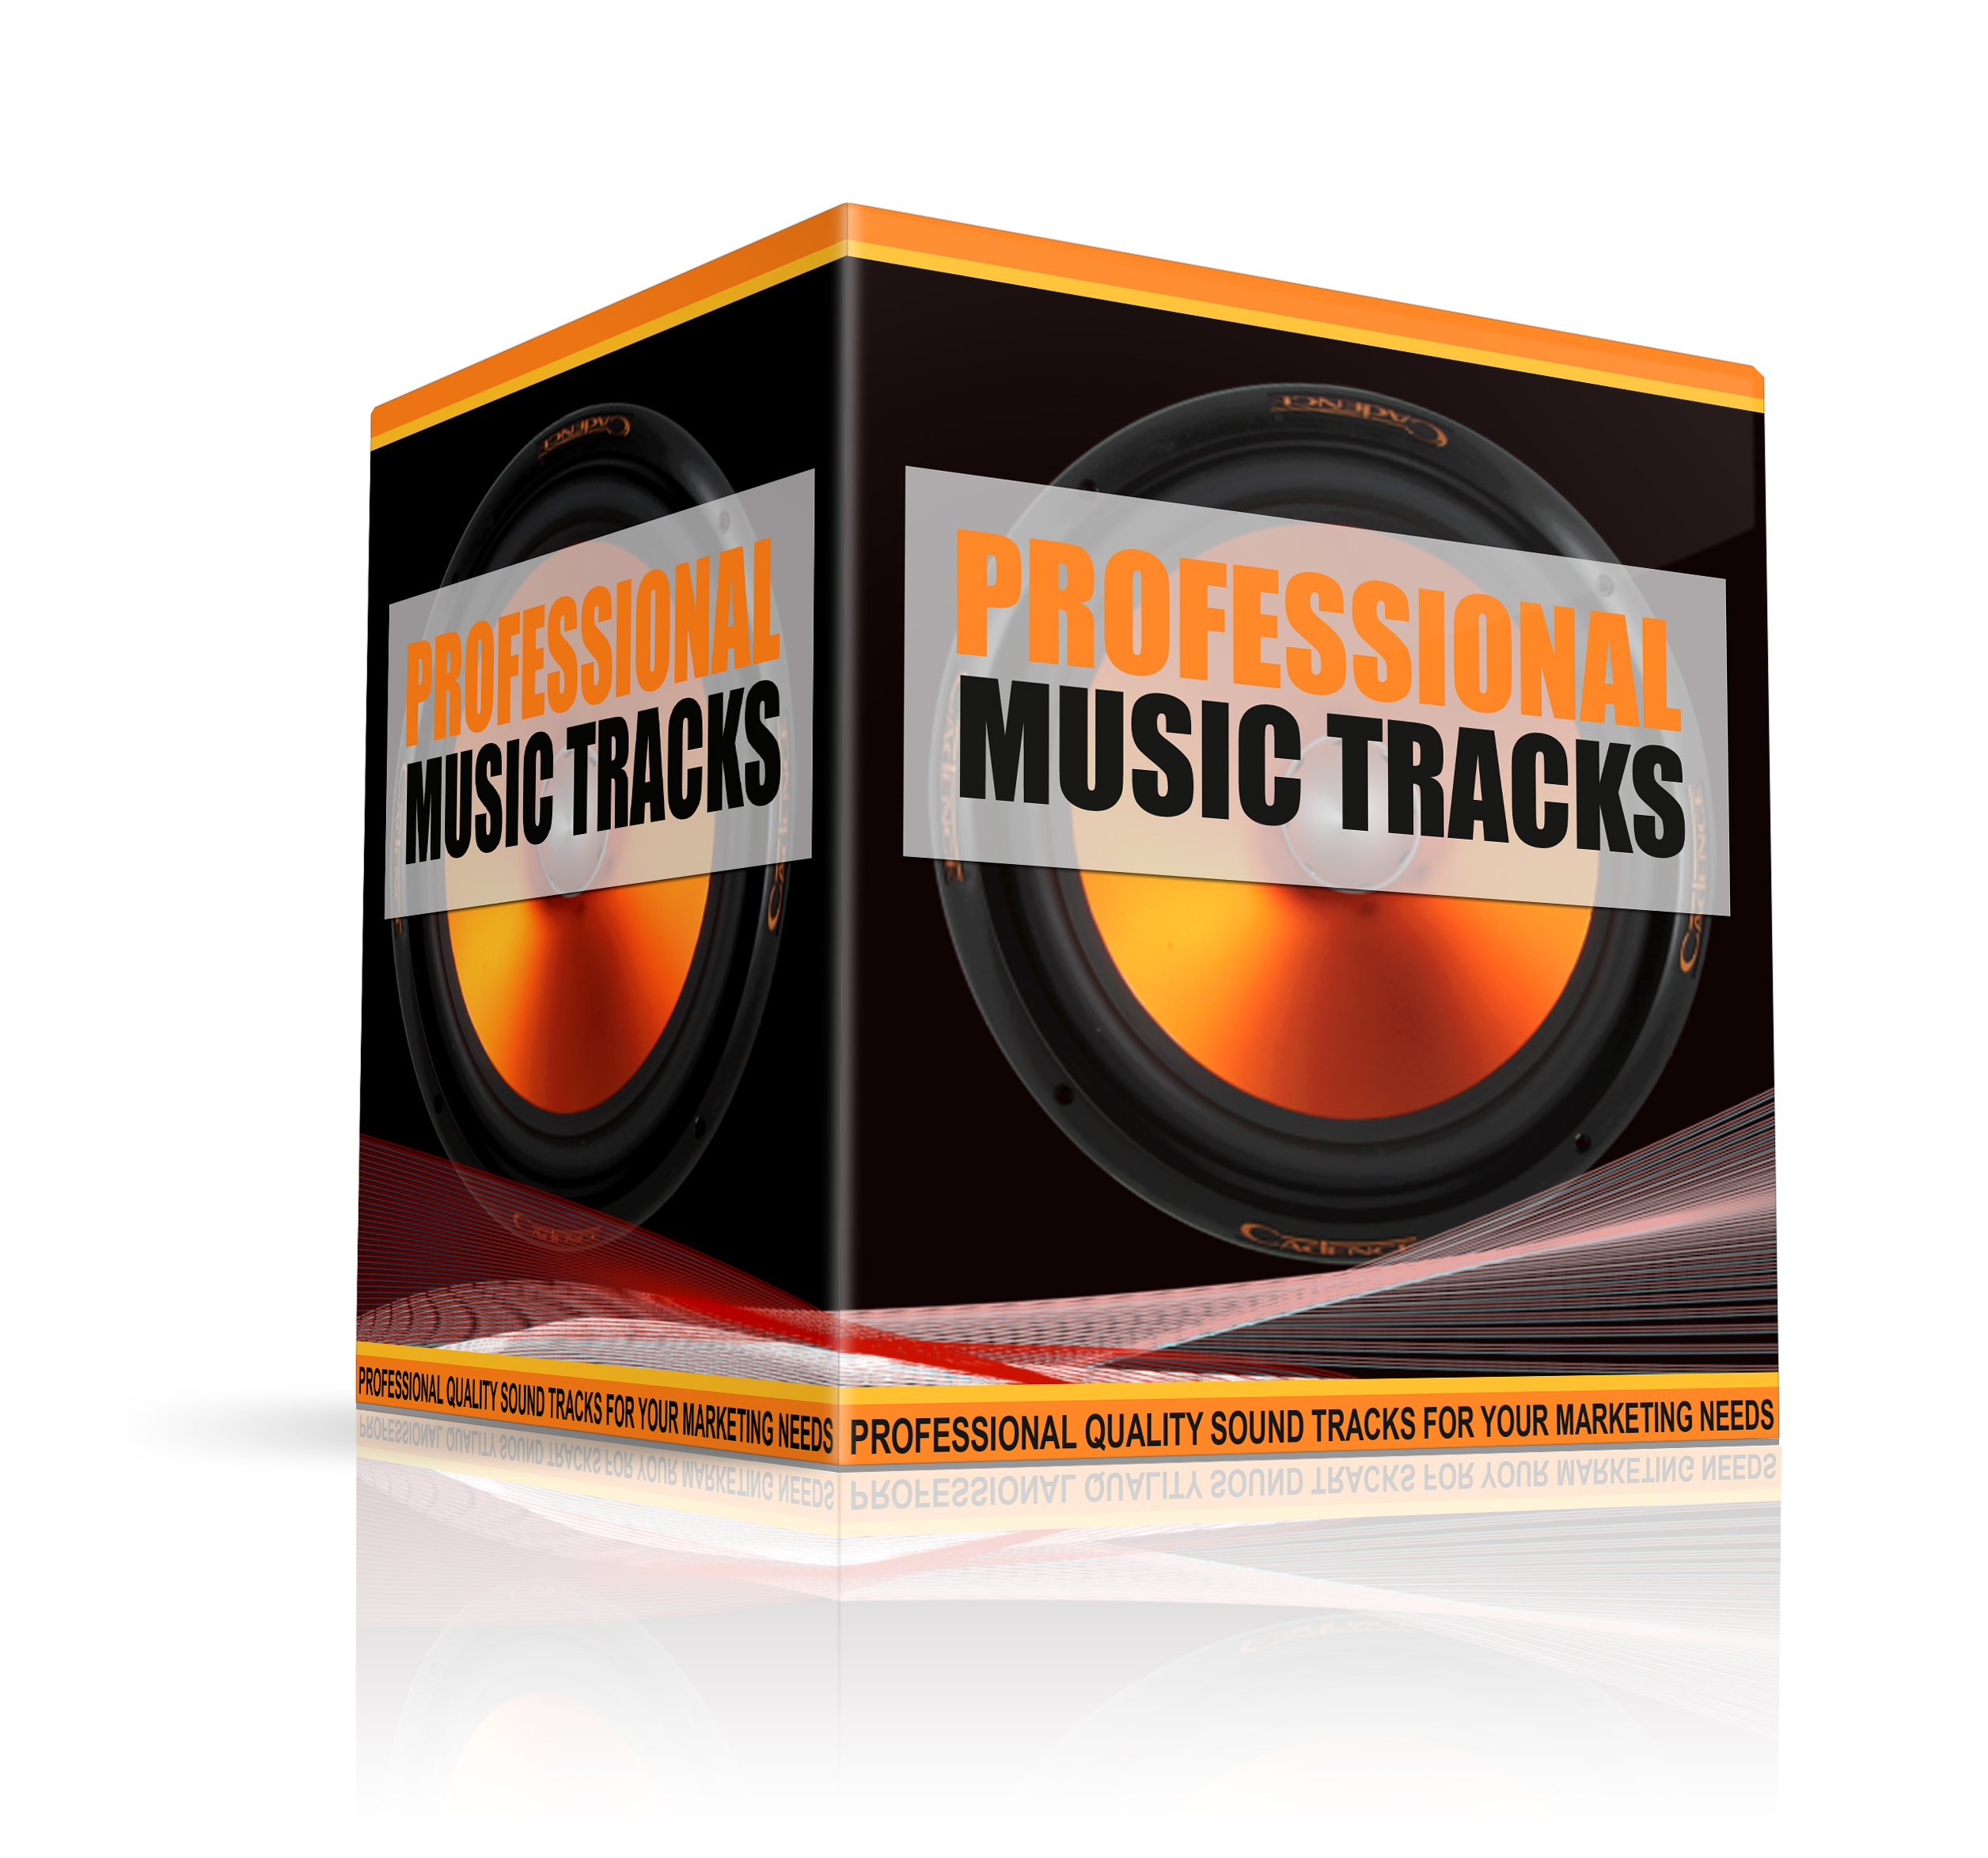 Professional music tracks and an audio pack of 1500 mp3 MRR